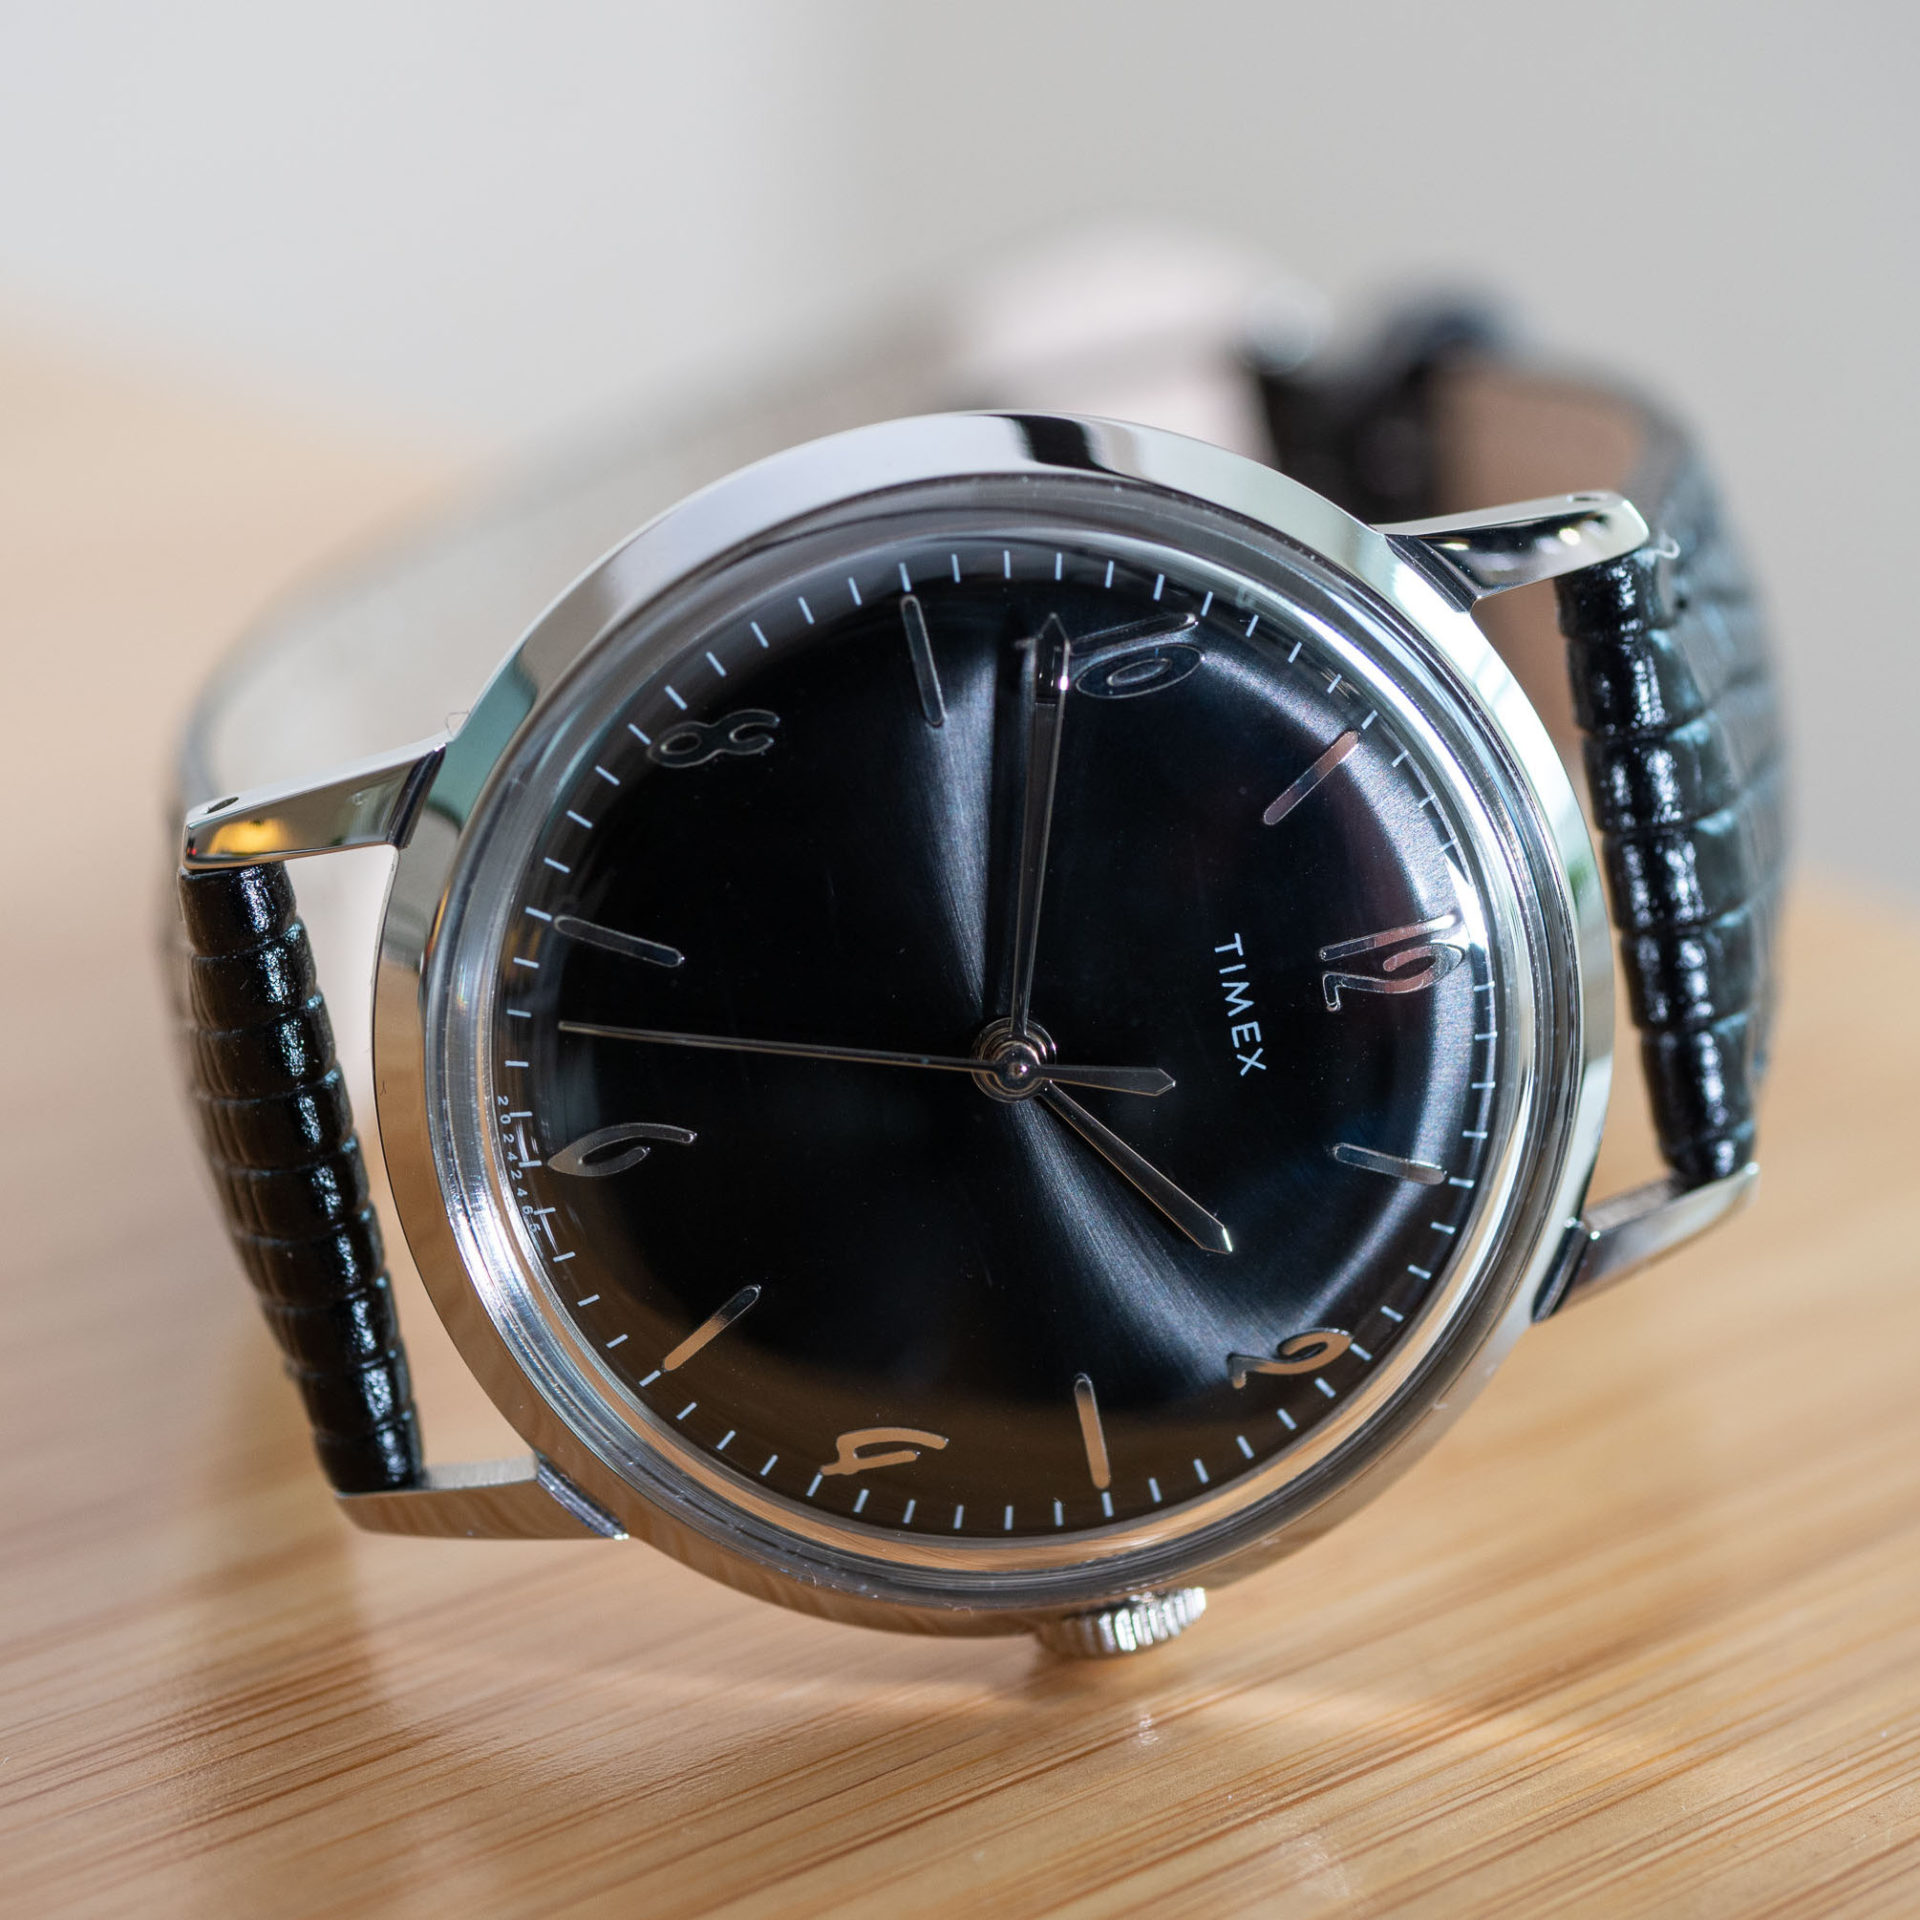 Timex Marlin 34 review